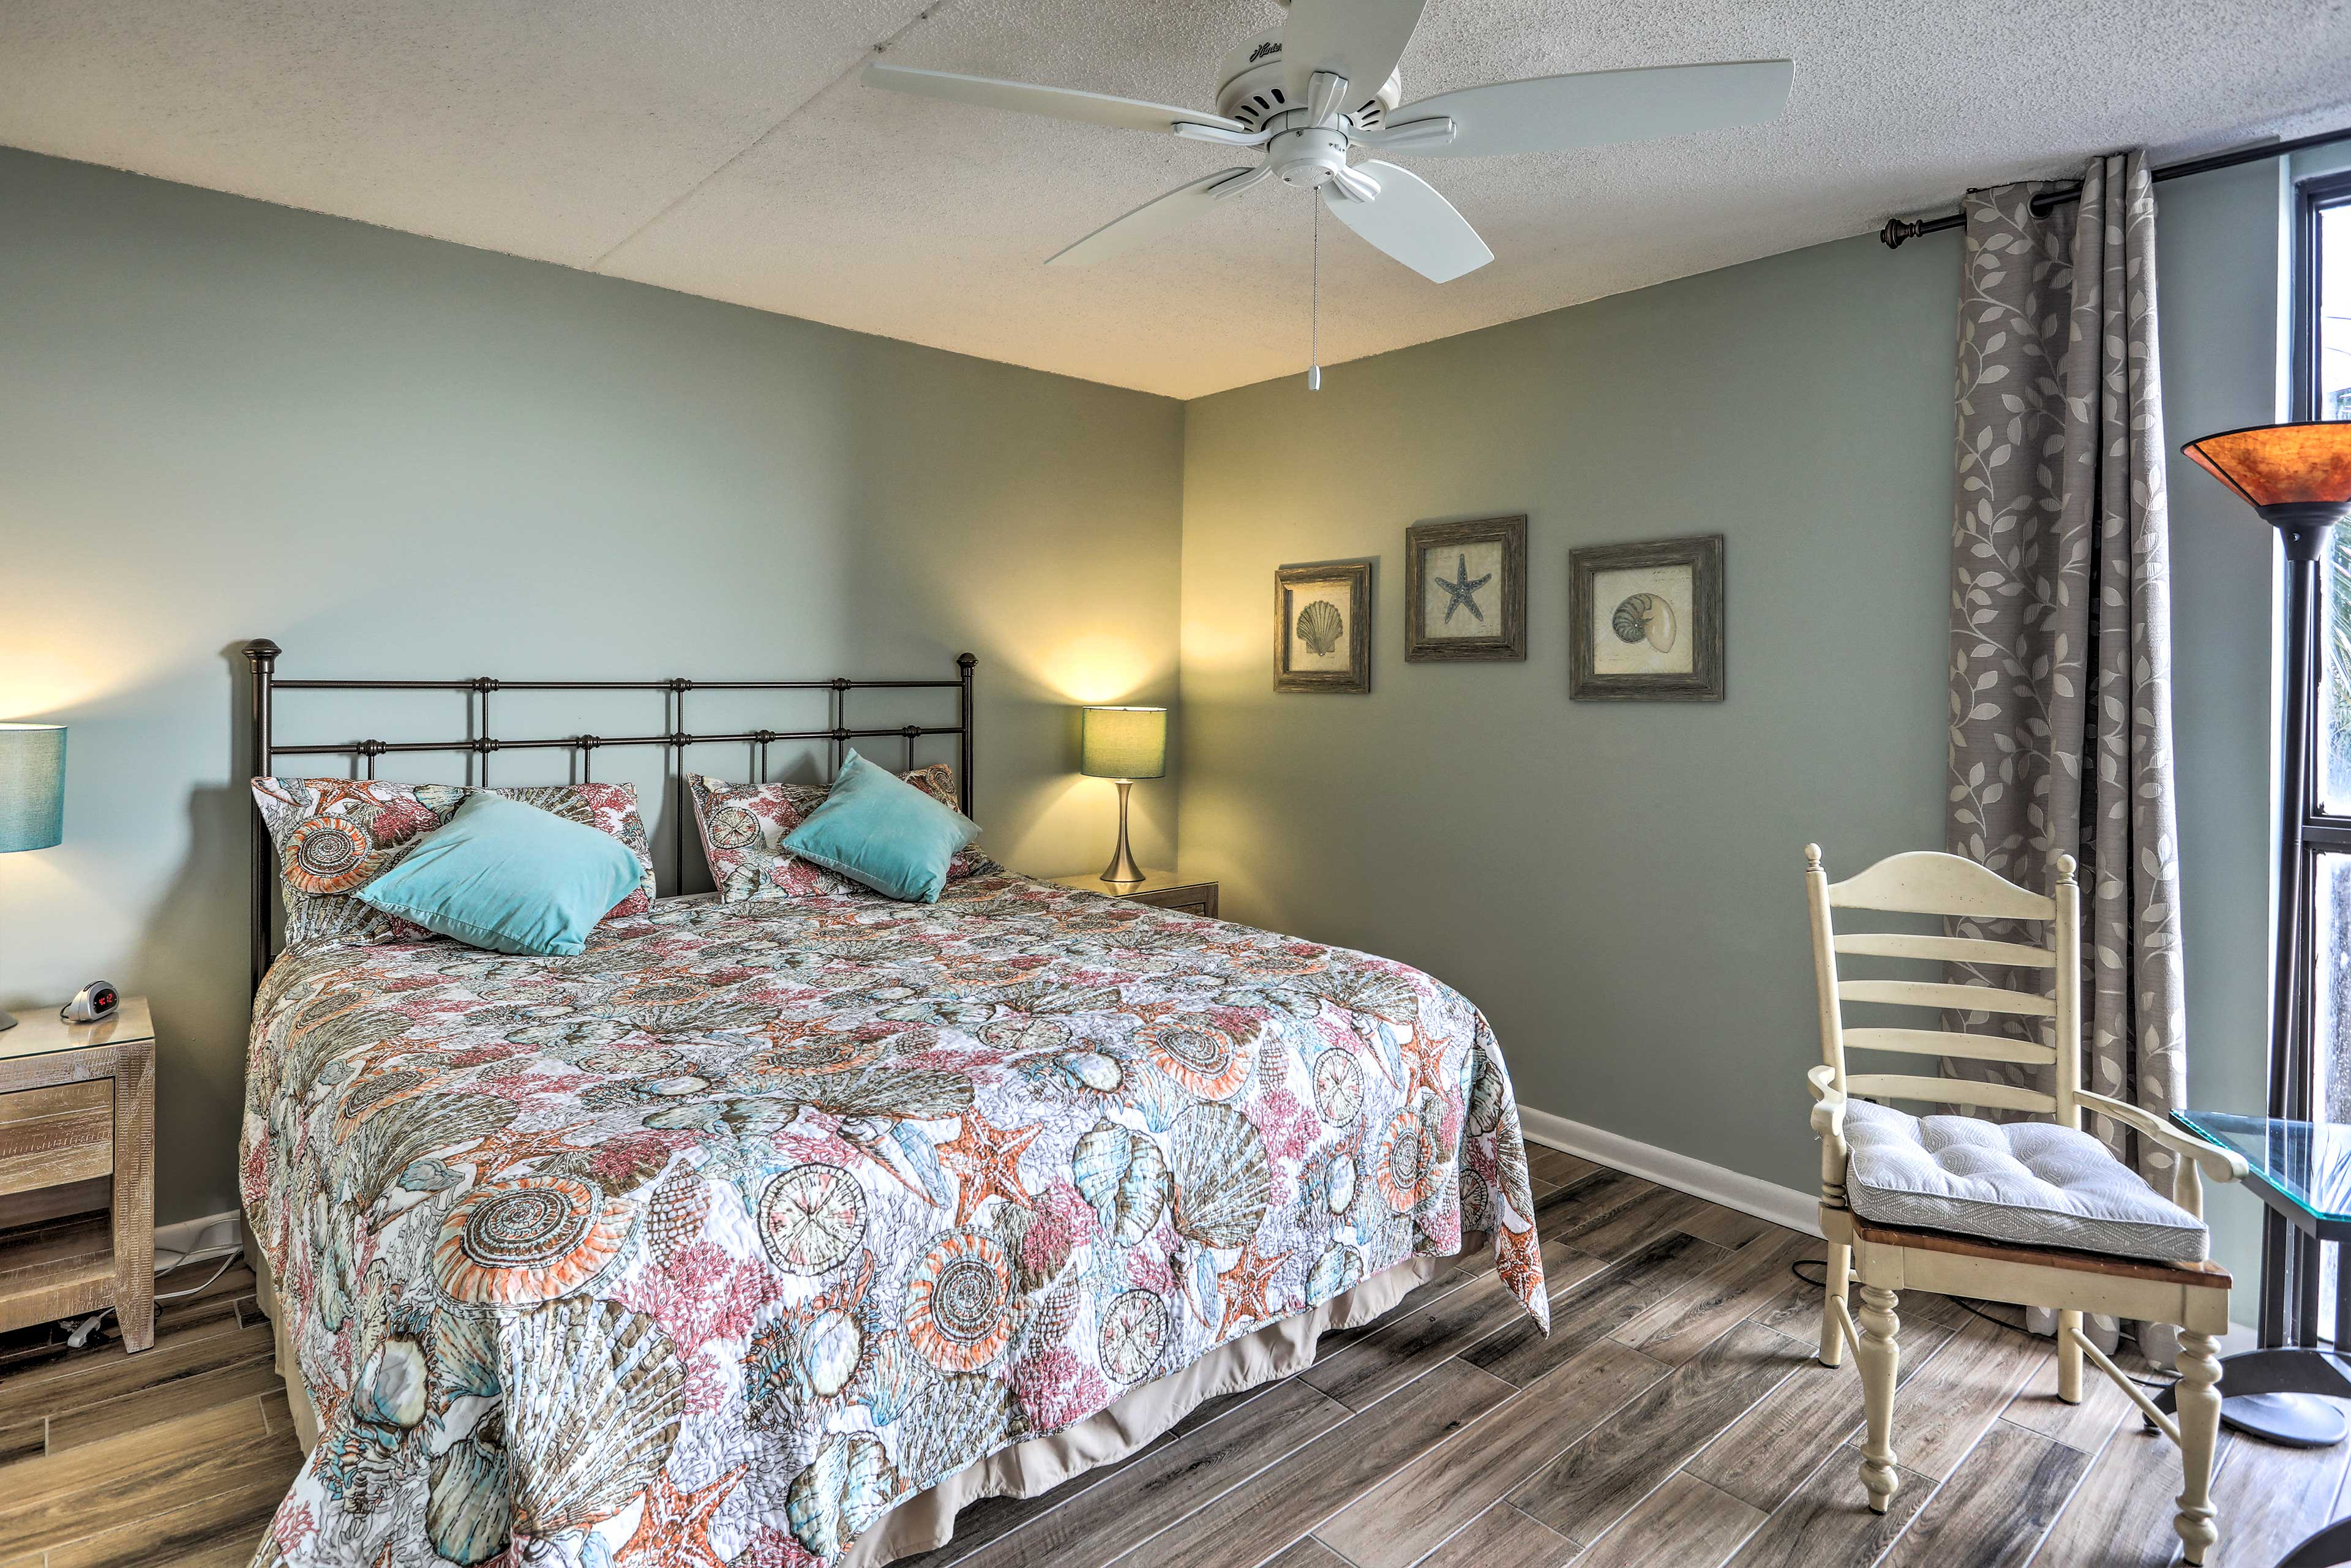 The master bedroom offers a king bed that will ensure peaceful slumbers.